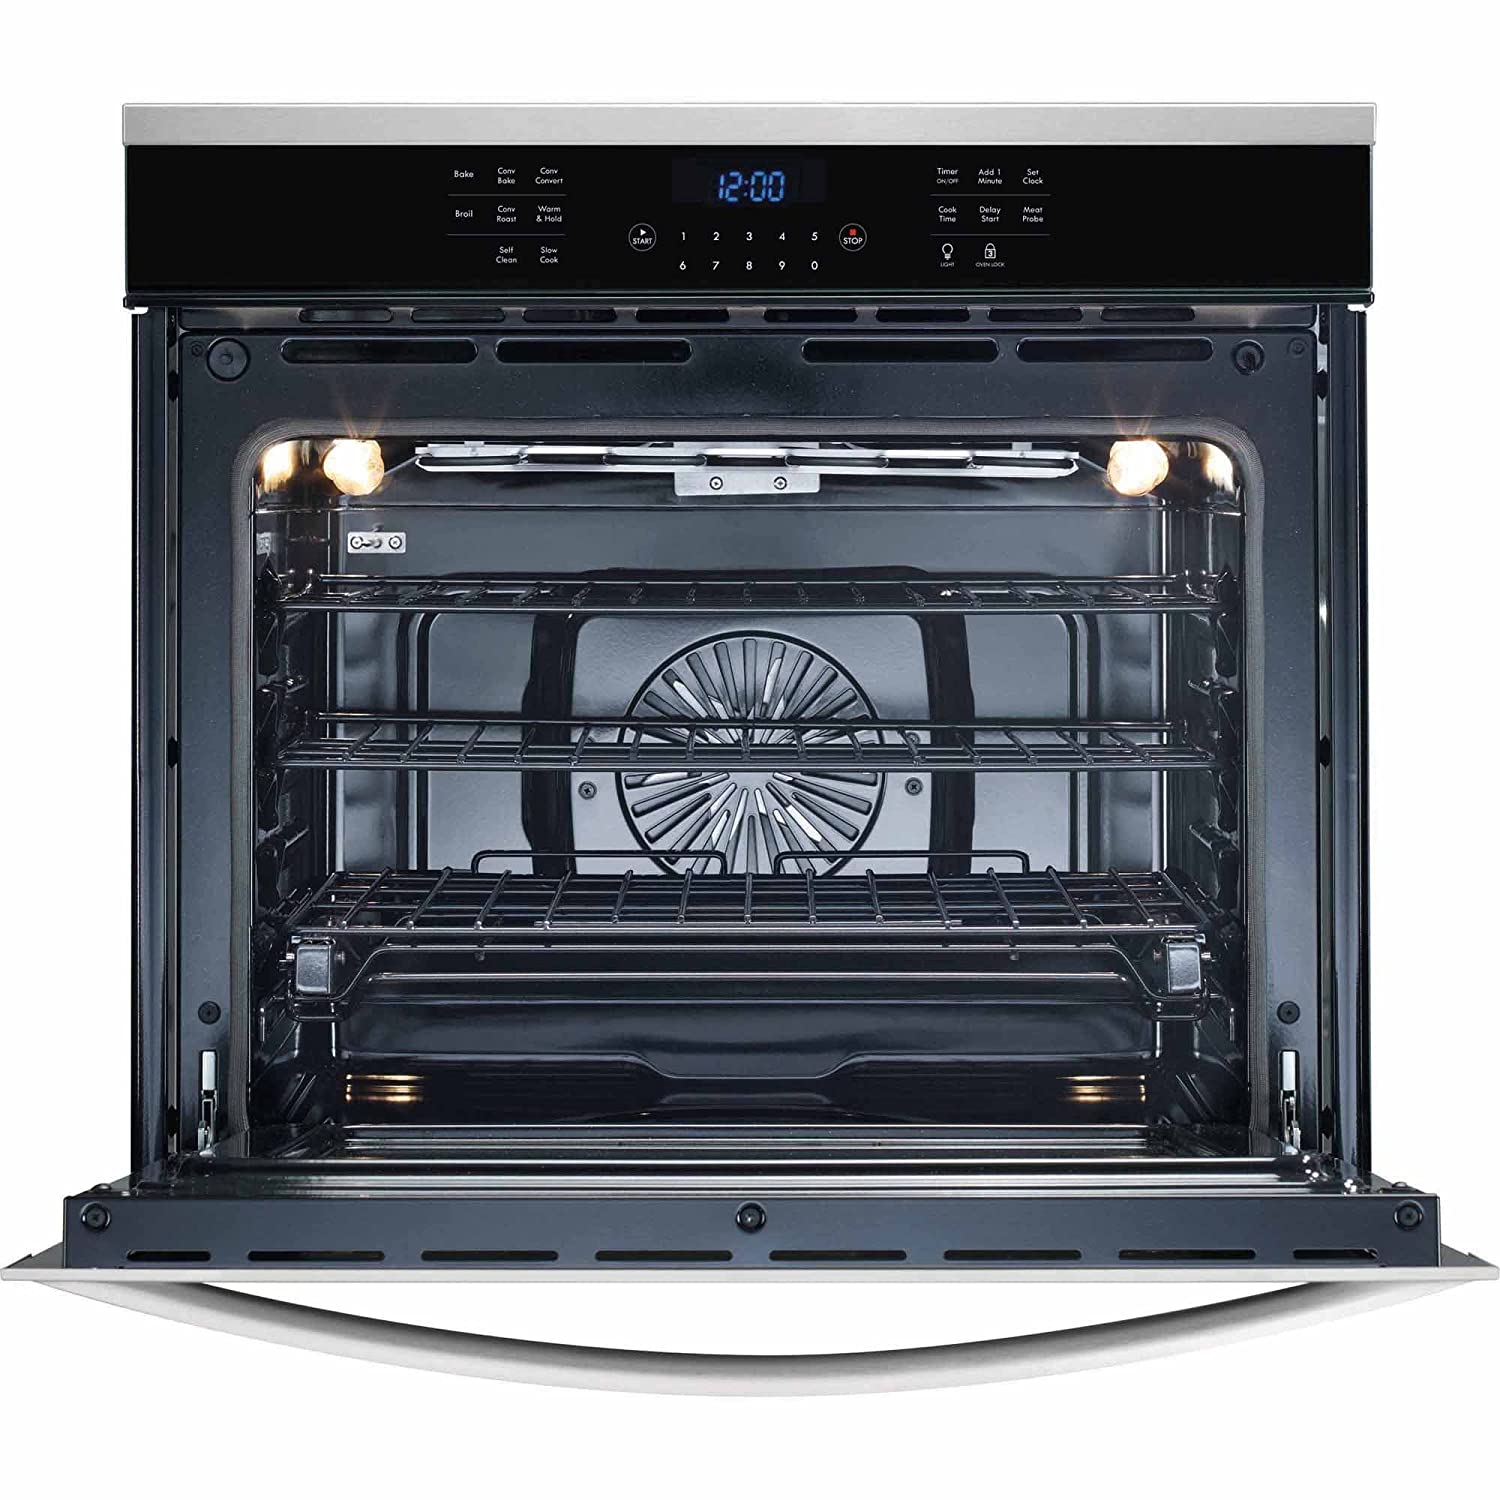 """Amazon.com: Kenmore Elite 48353 30"""" Electric Single Wall Oven with True  Convection in Stainless Steel, includes delivery and hookup (Available in  select ..."""